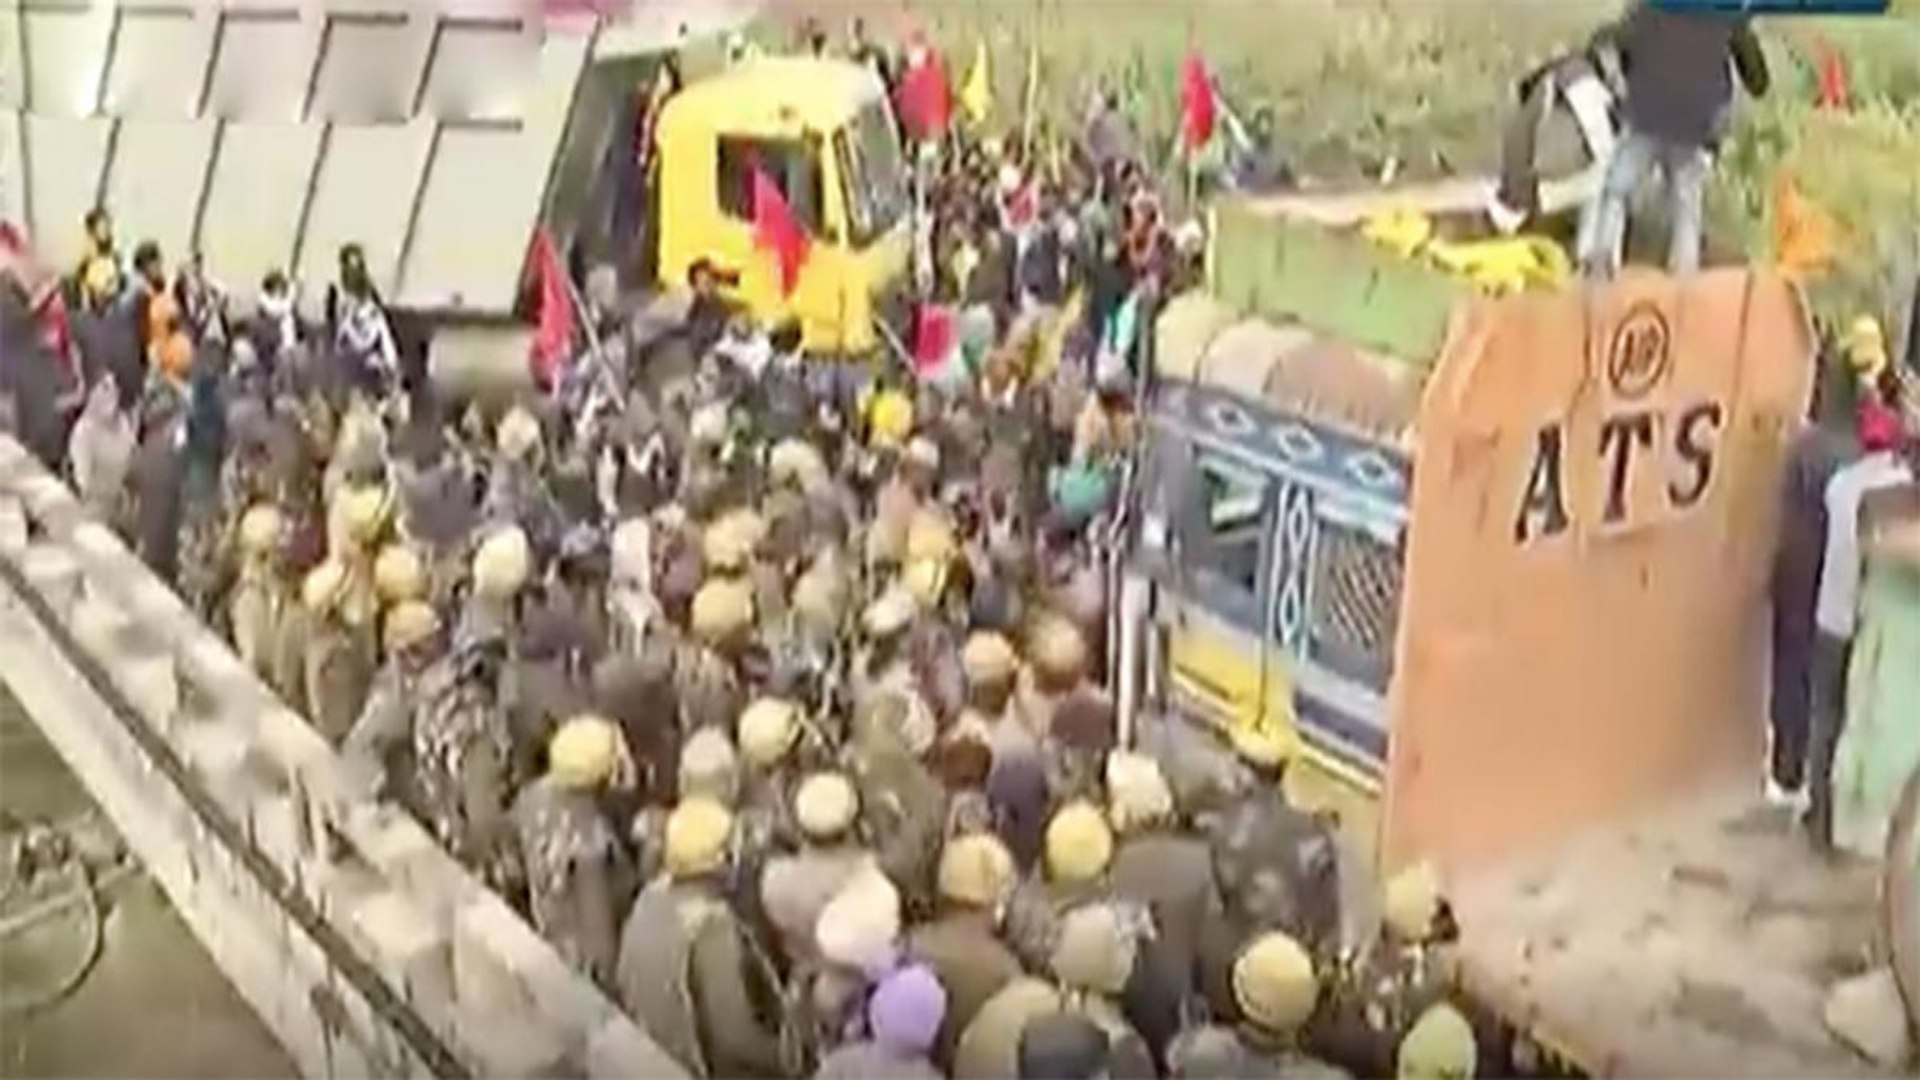 Chaos at border, farmers try to remove barricades